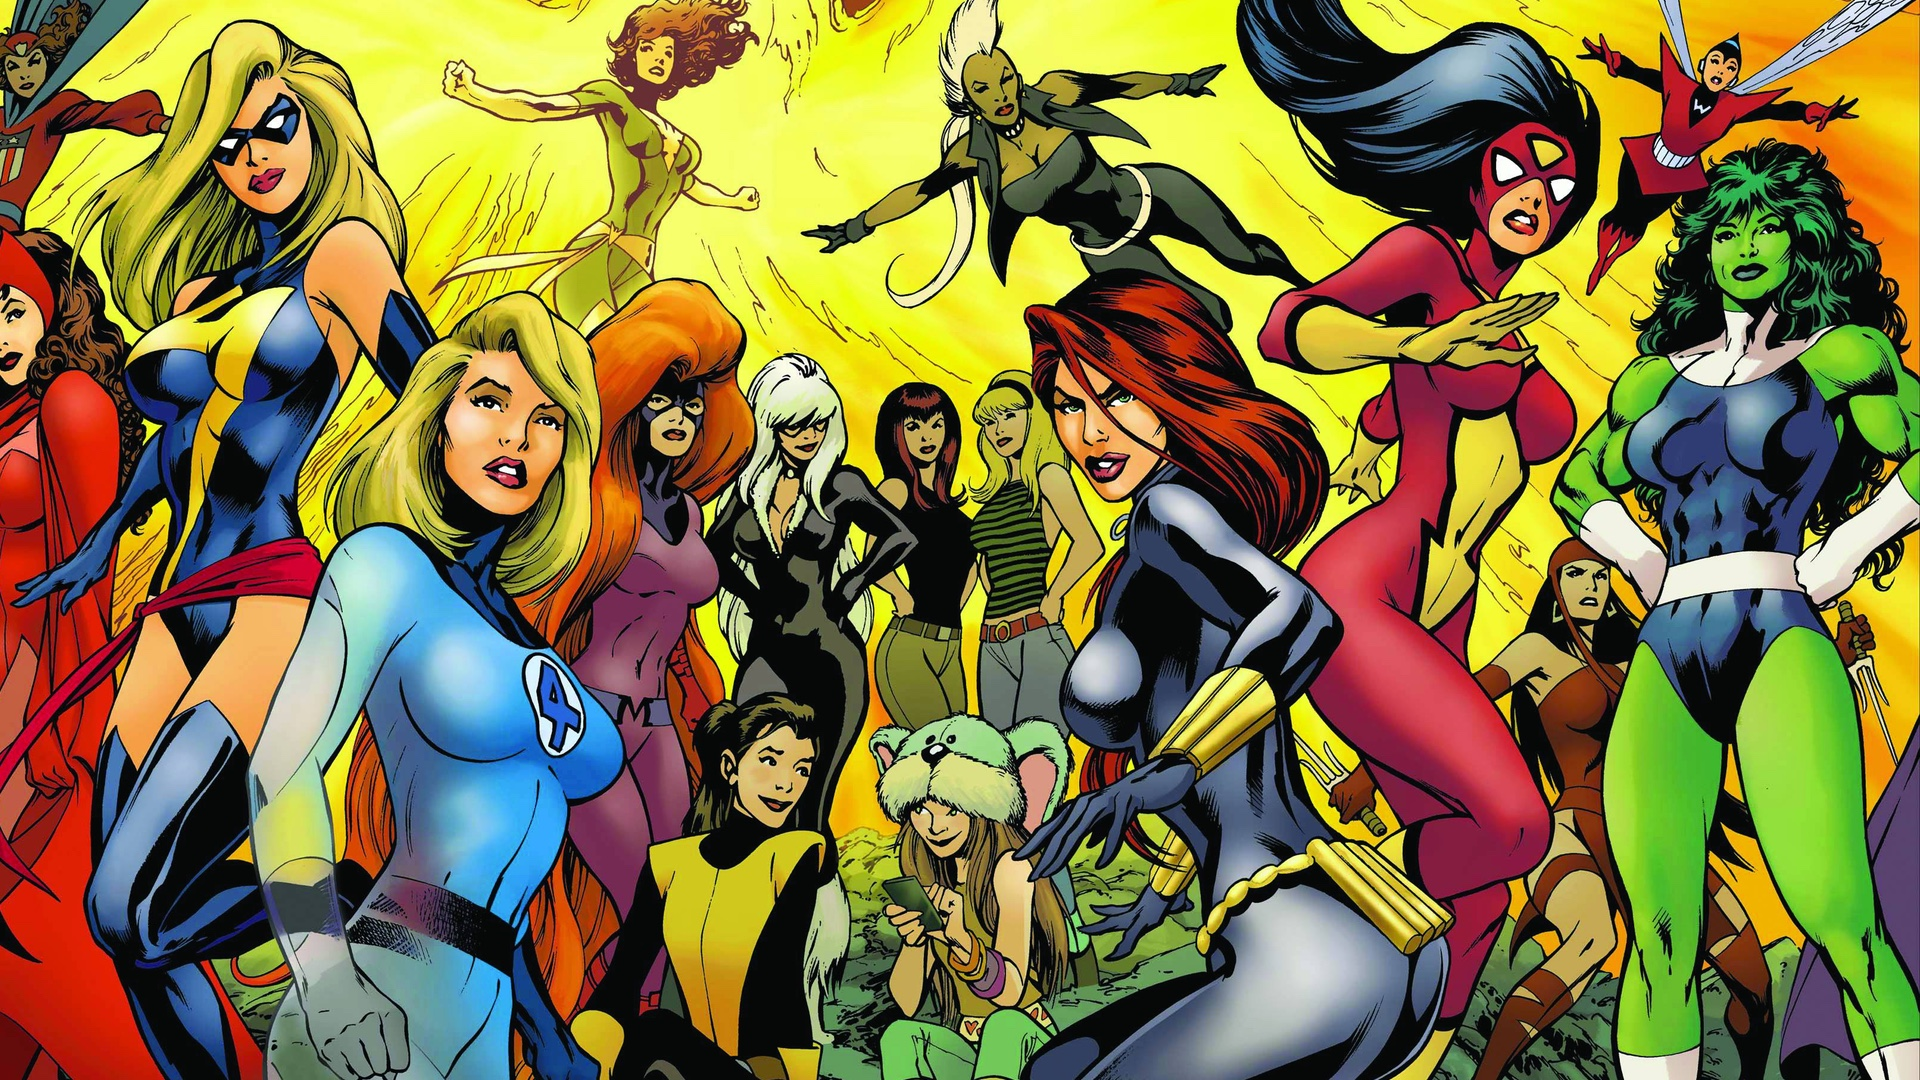 marvel-is-developing-a-jessica-jones-esque-superhero-series-for-abc-social.jpg